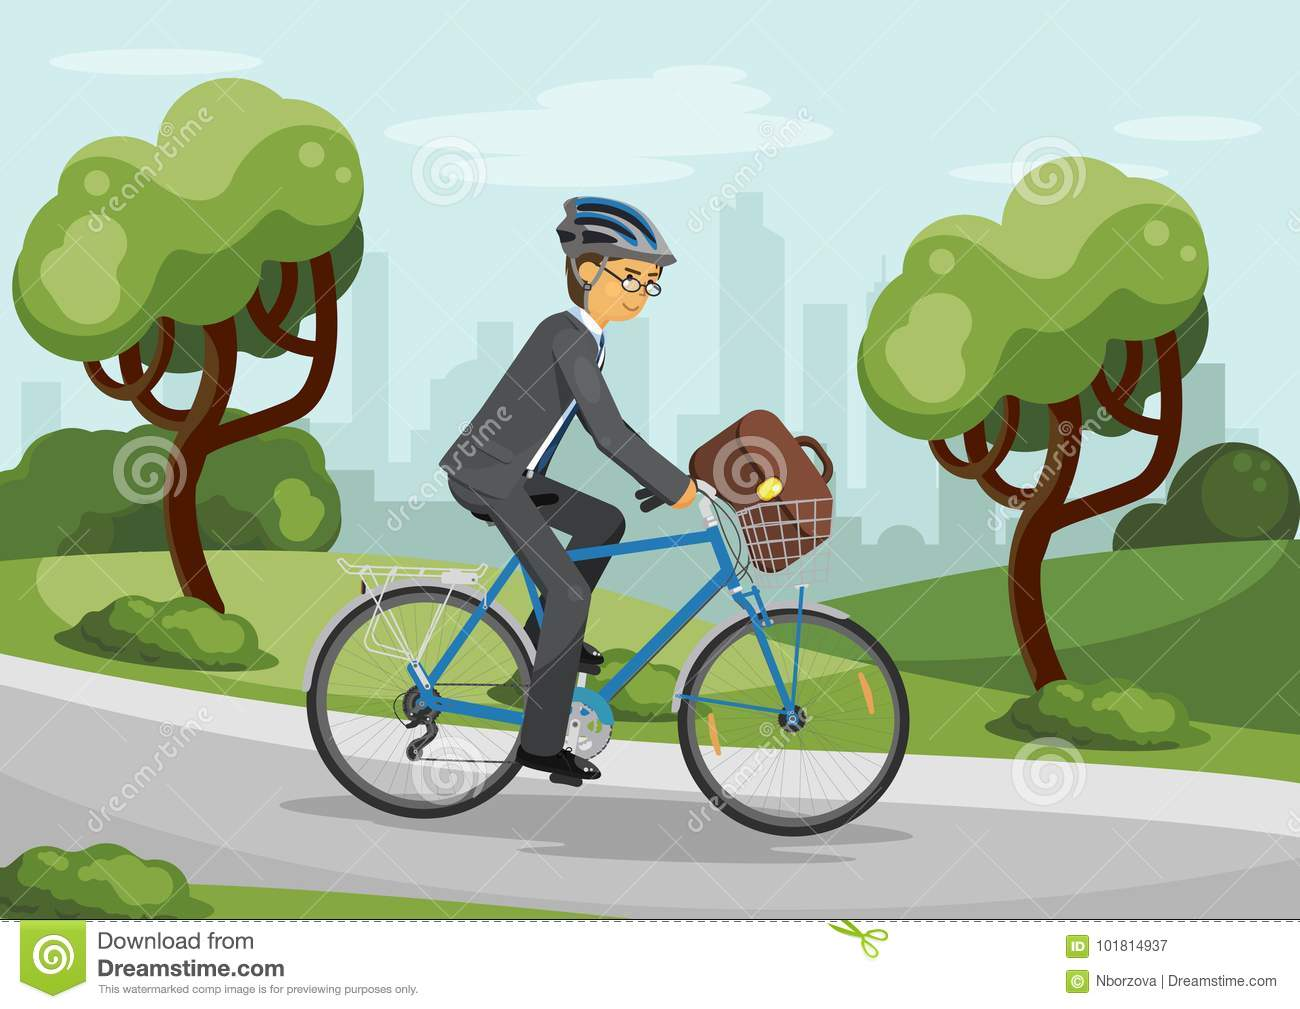 Business Man Riding Bike In Helmet Stock Vector Illustration Of Briefcase People 101814937